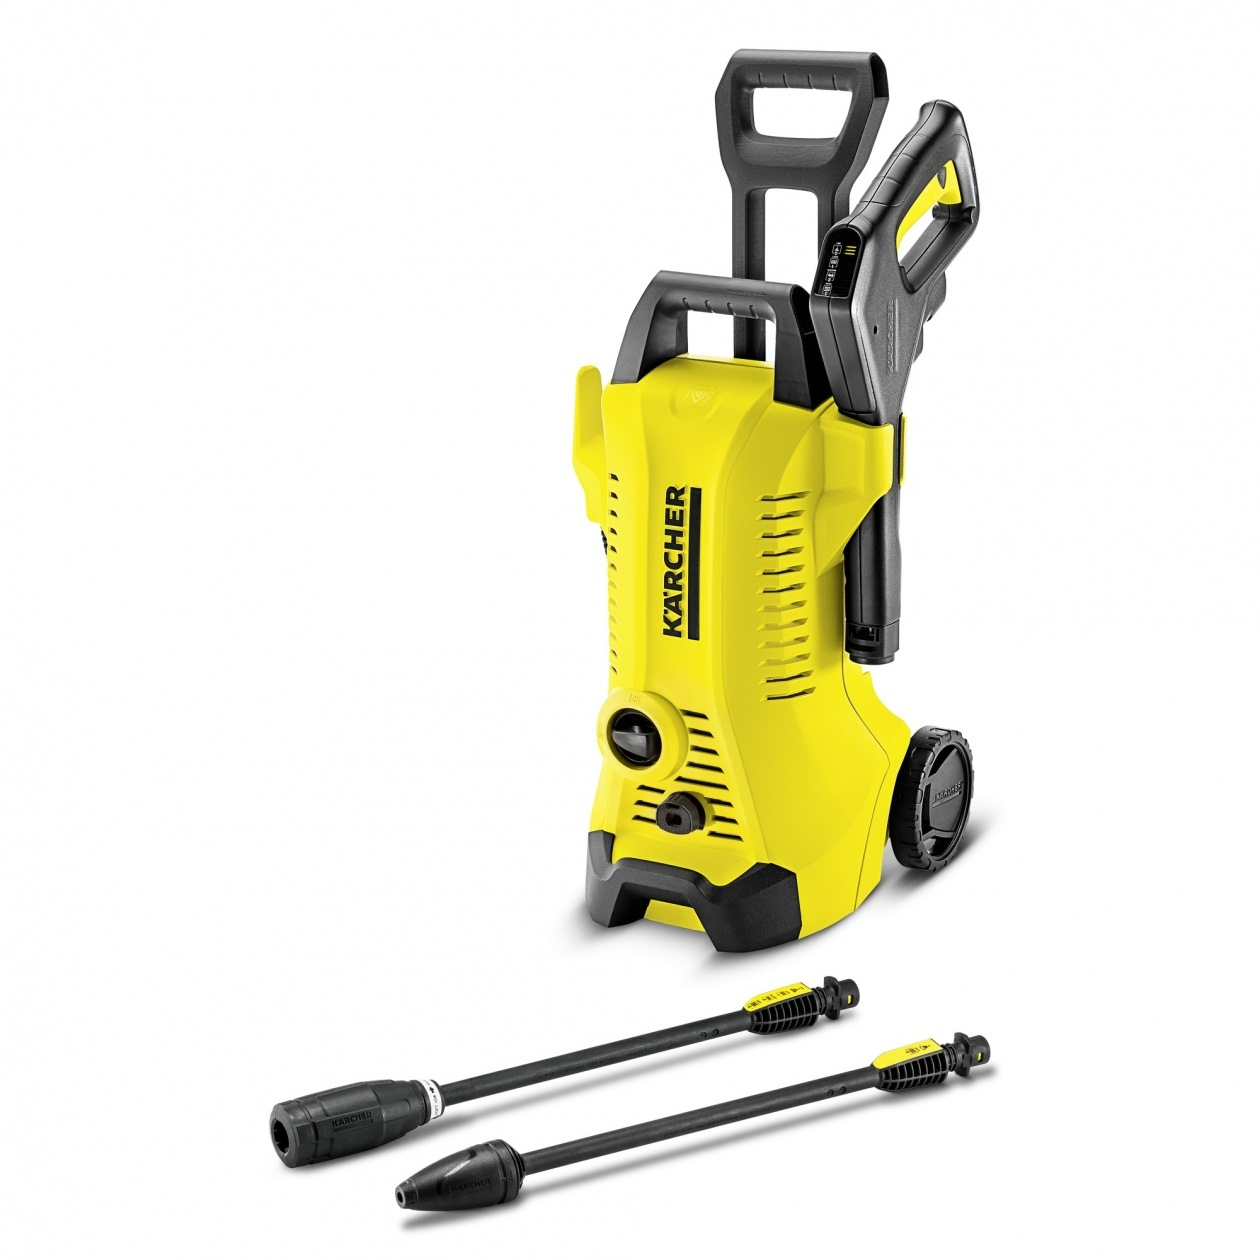 karcher 120 bar high pressure cleaner k3 full control pressure washers horme singapore. Black Bedroom Furniture Sets. Home Design Ideas